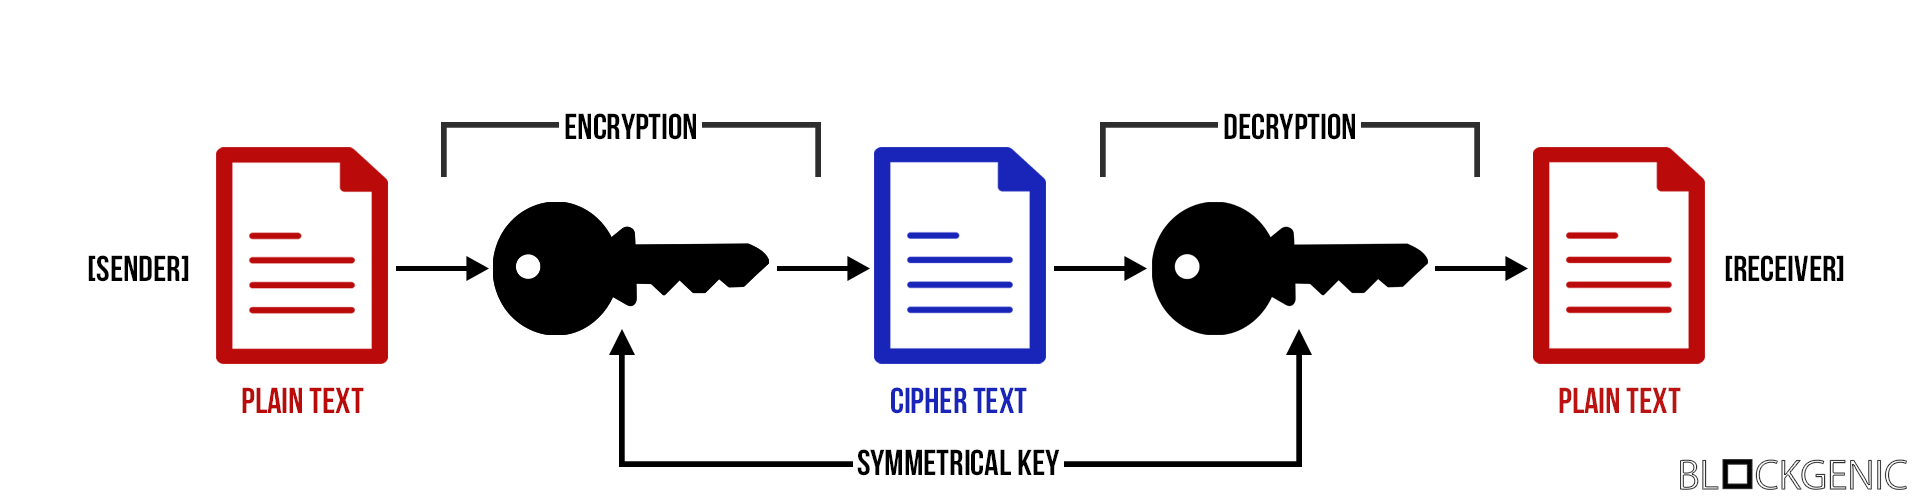 Asymmetric Cryptography In Blockchains - By Blockgenic